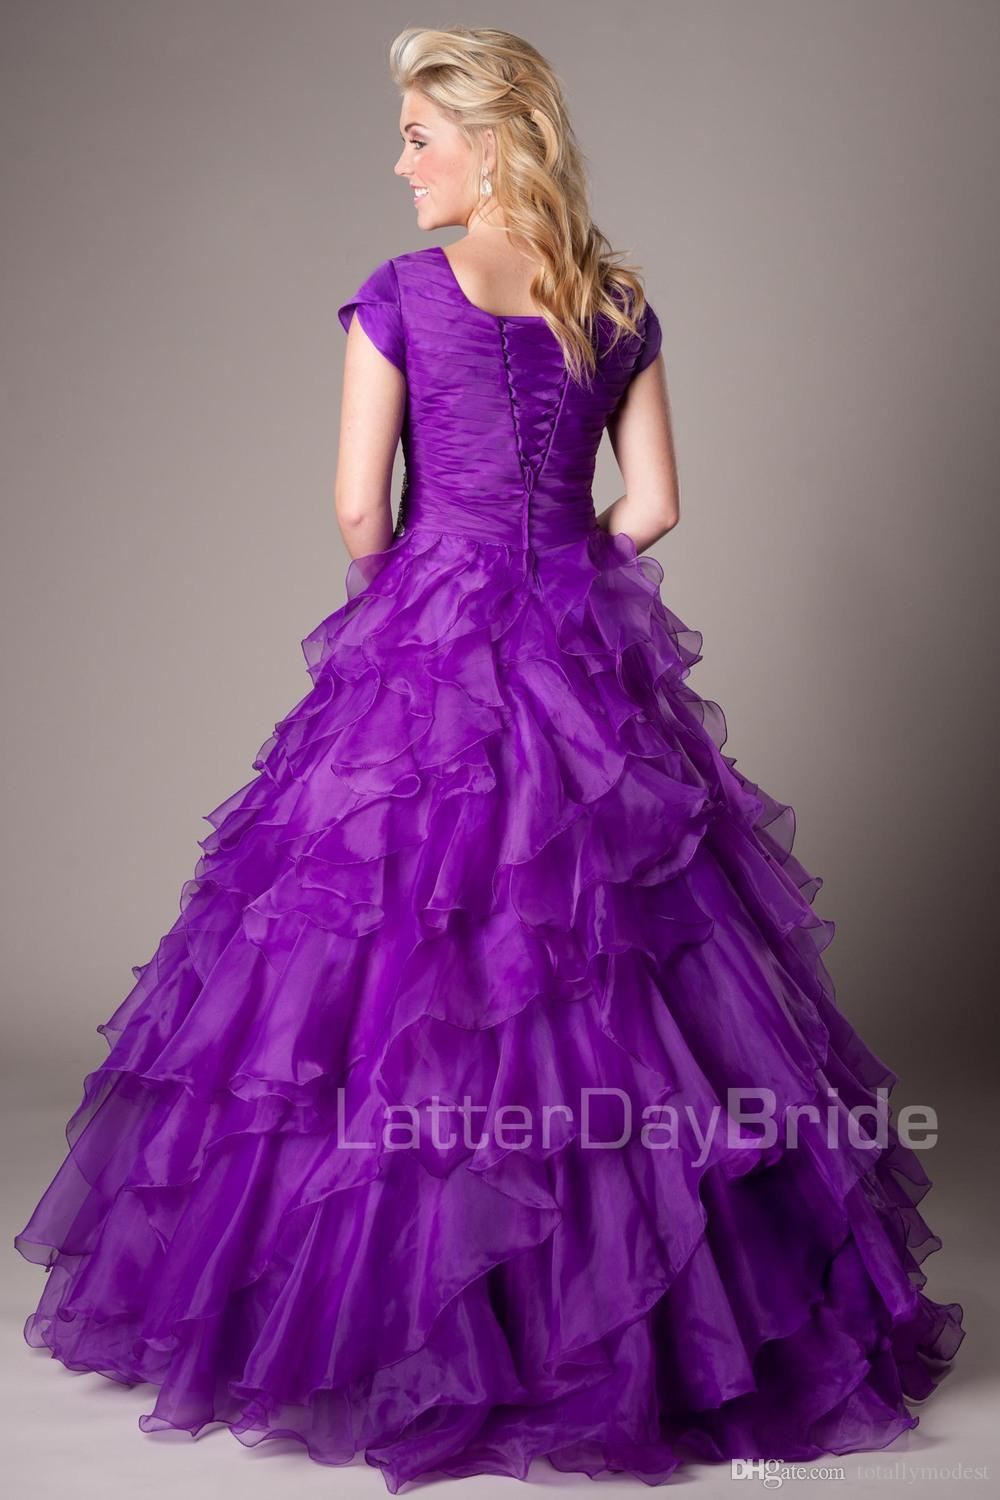 Purple Ball Gown Modest Prom Dresses With Cap Sleeves Long Corset Back Pleated Ruffles Organza Modest Teens Formal Party Prom Dresses Gowns